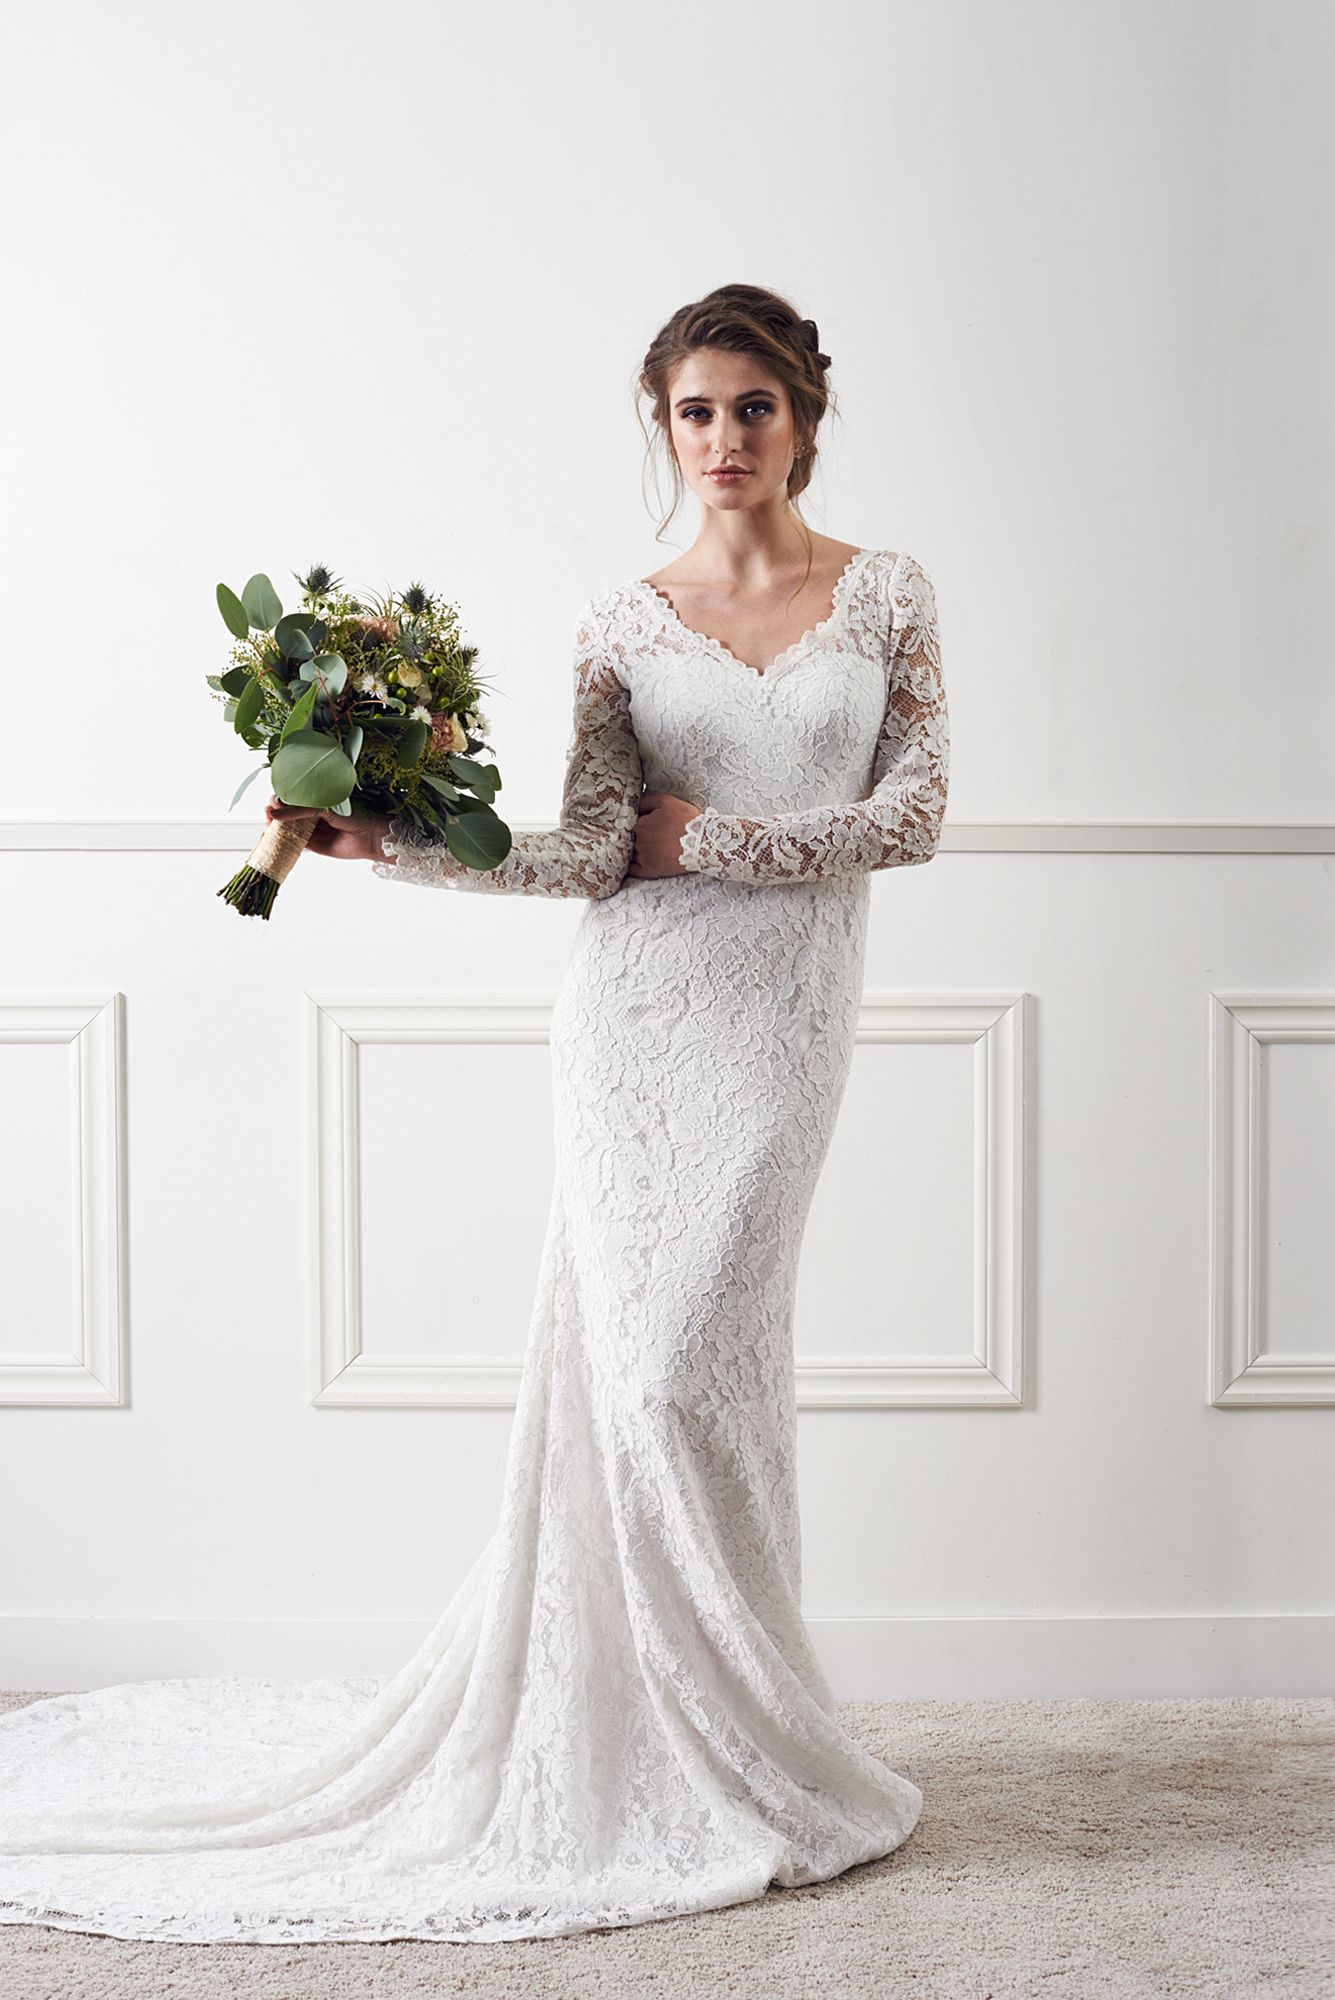 Serena Rose Lace Wedding Gown From By Malina 2016 Collection